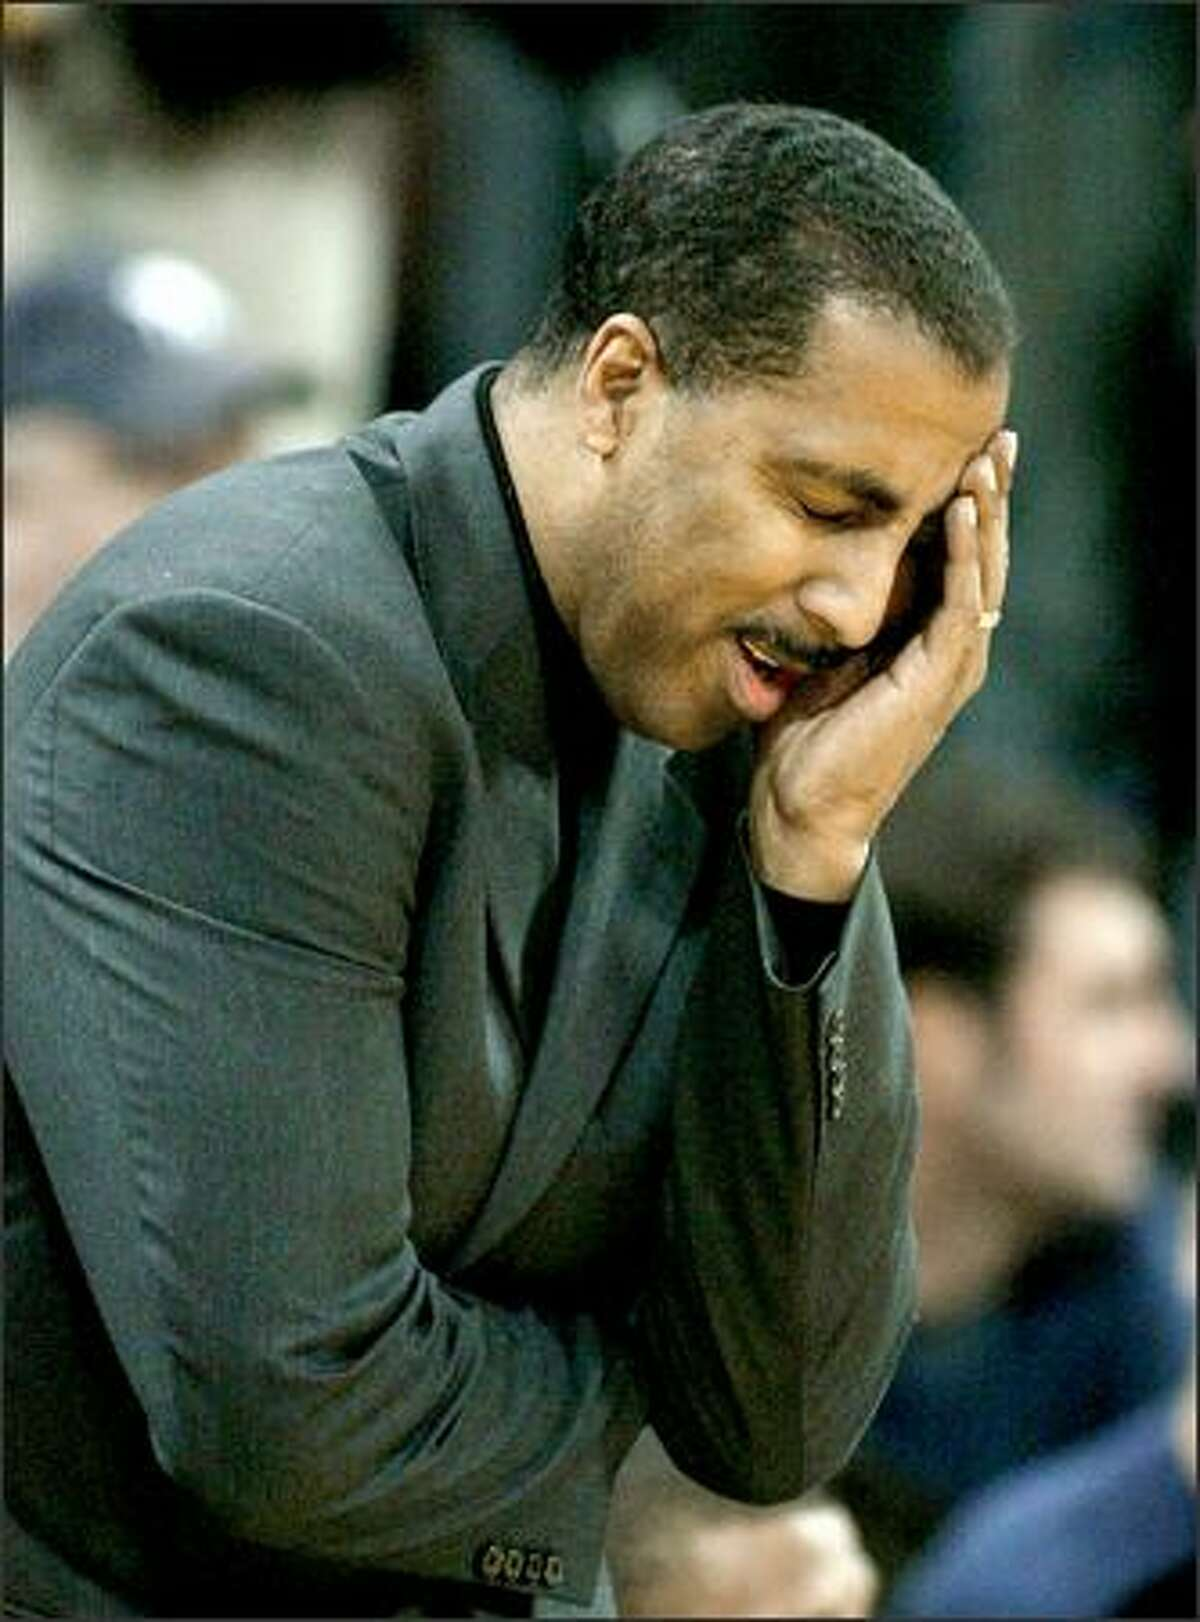 UW Coach Lorenzo Romar reacts to the referee calling a foul on the Huskies in the first half.